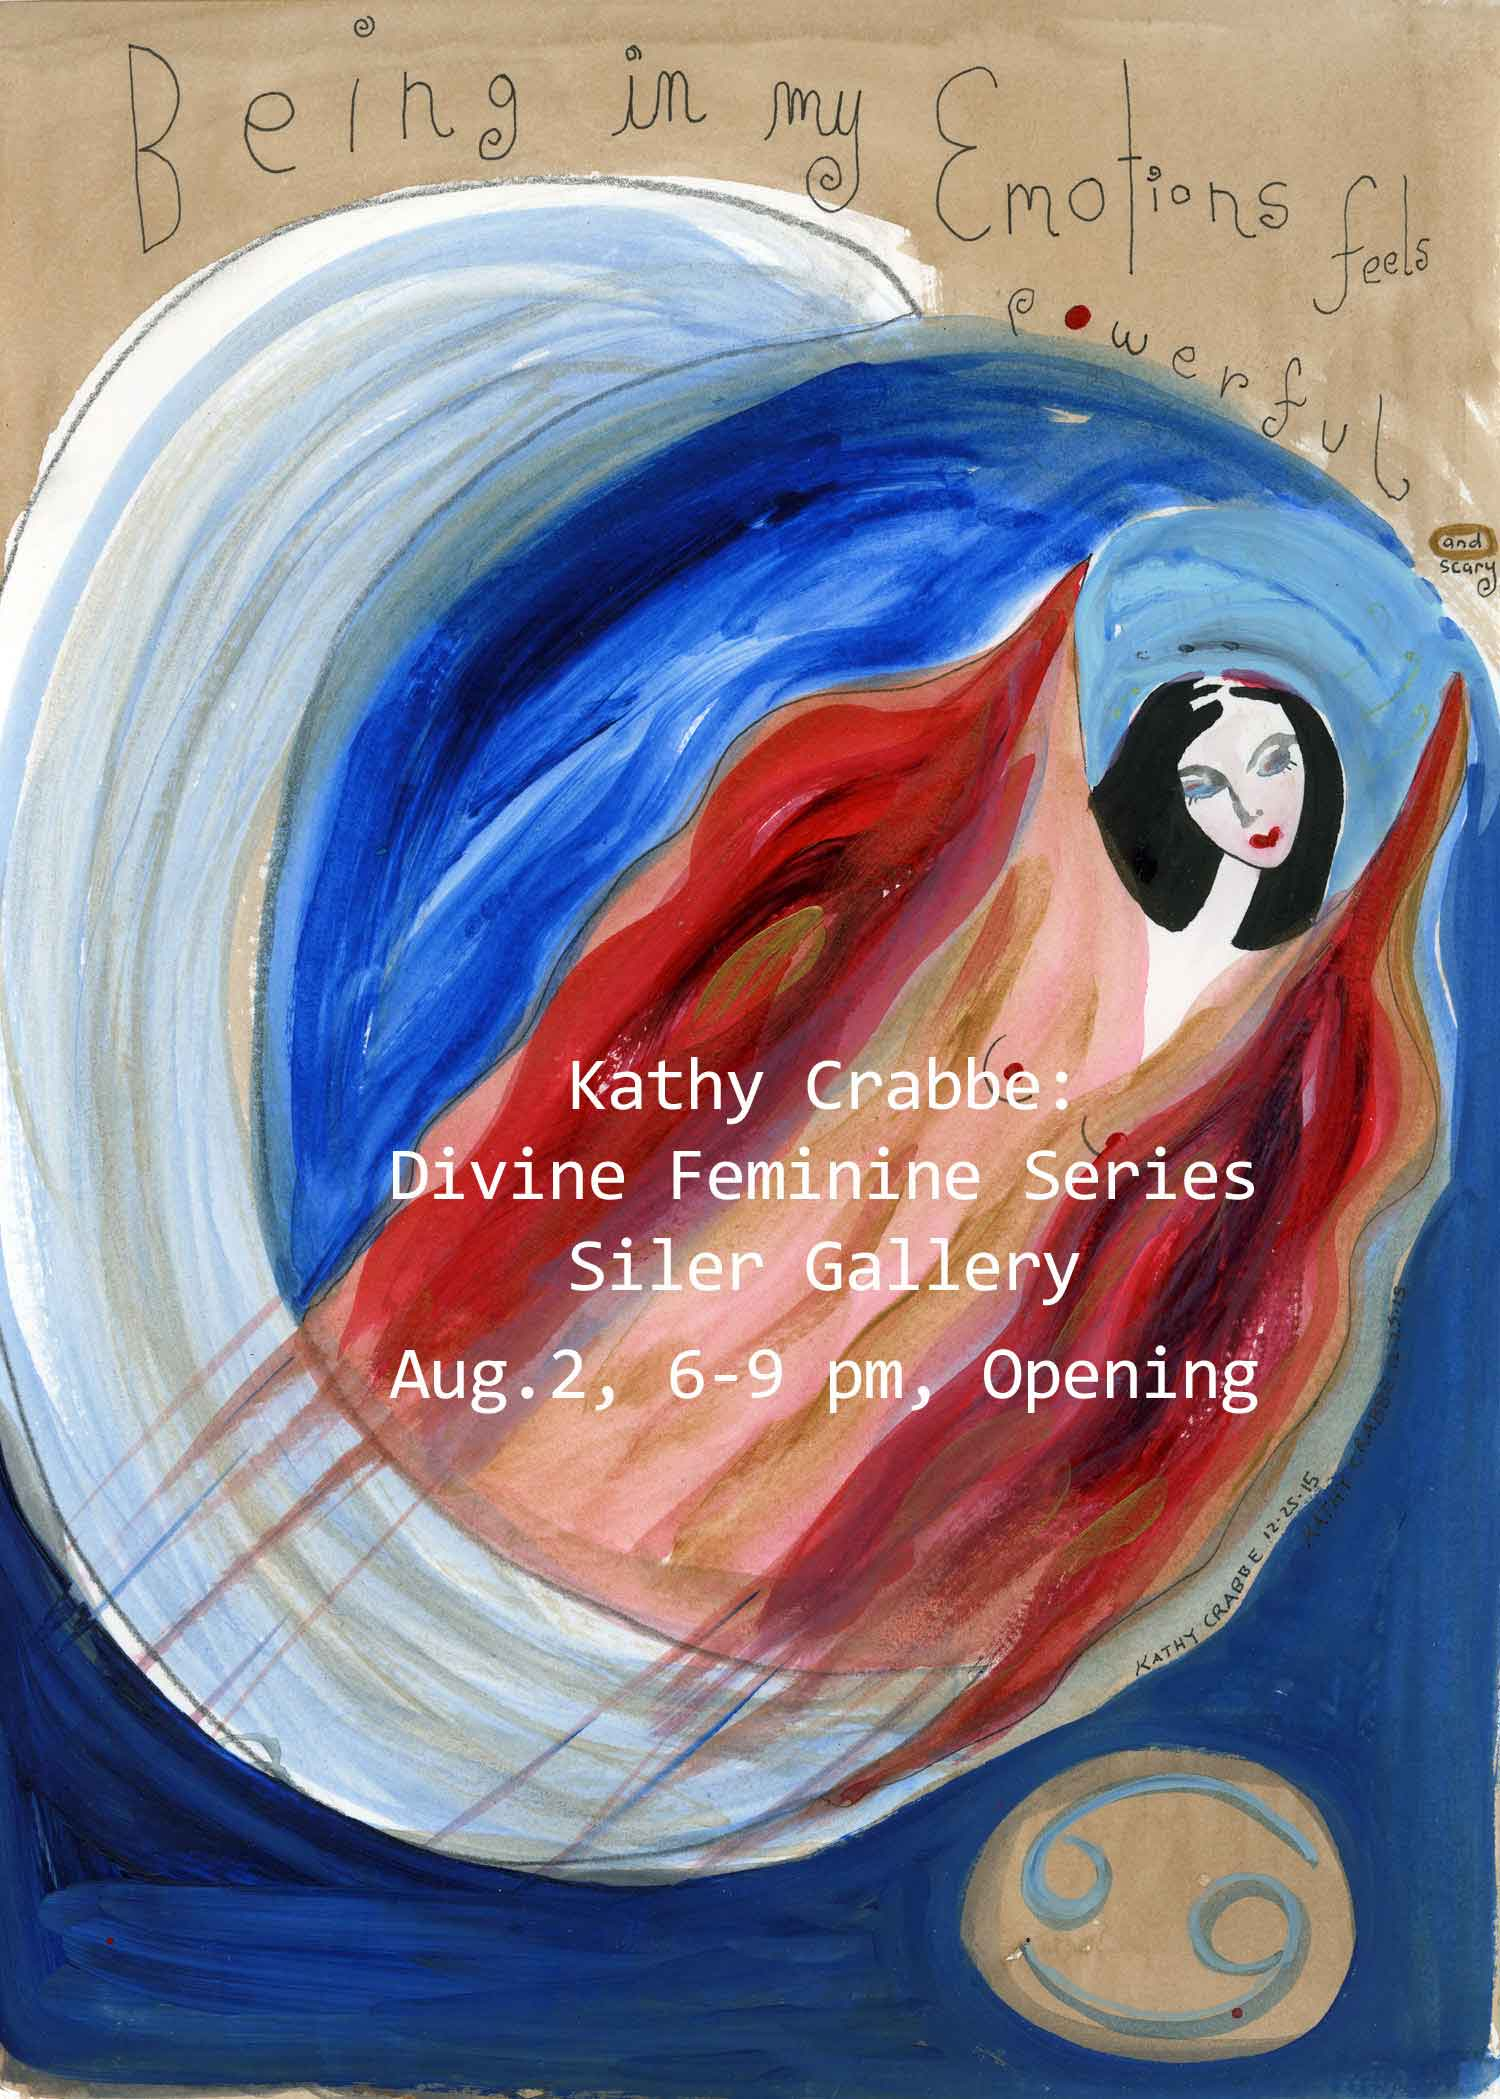 Divine Feminine Exhibition by Kathy Crabbe